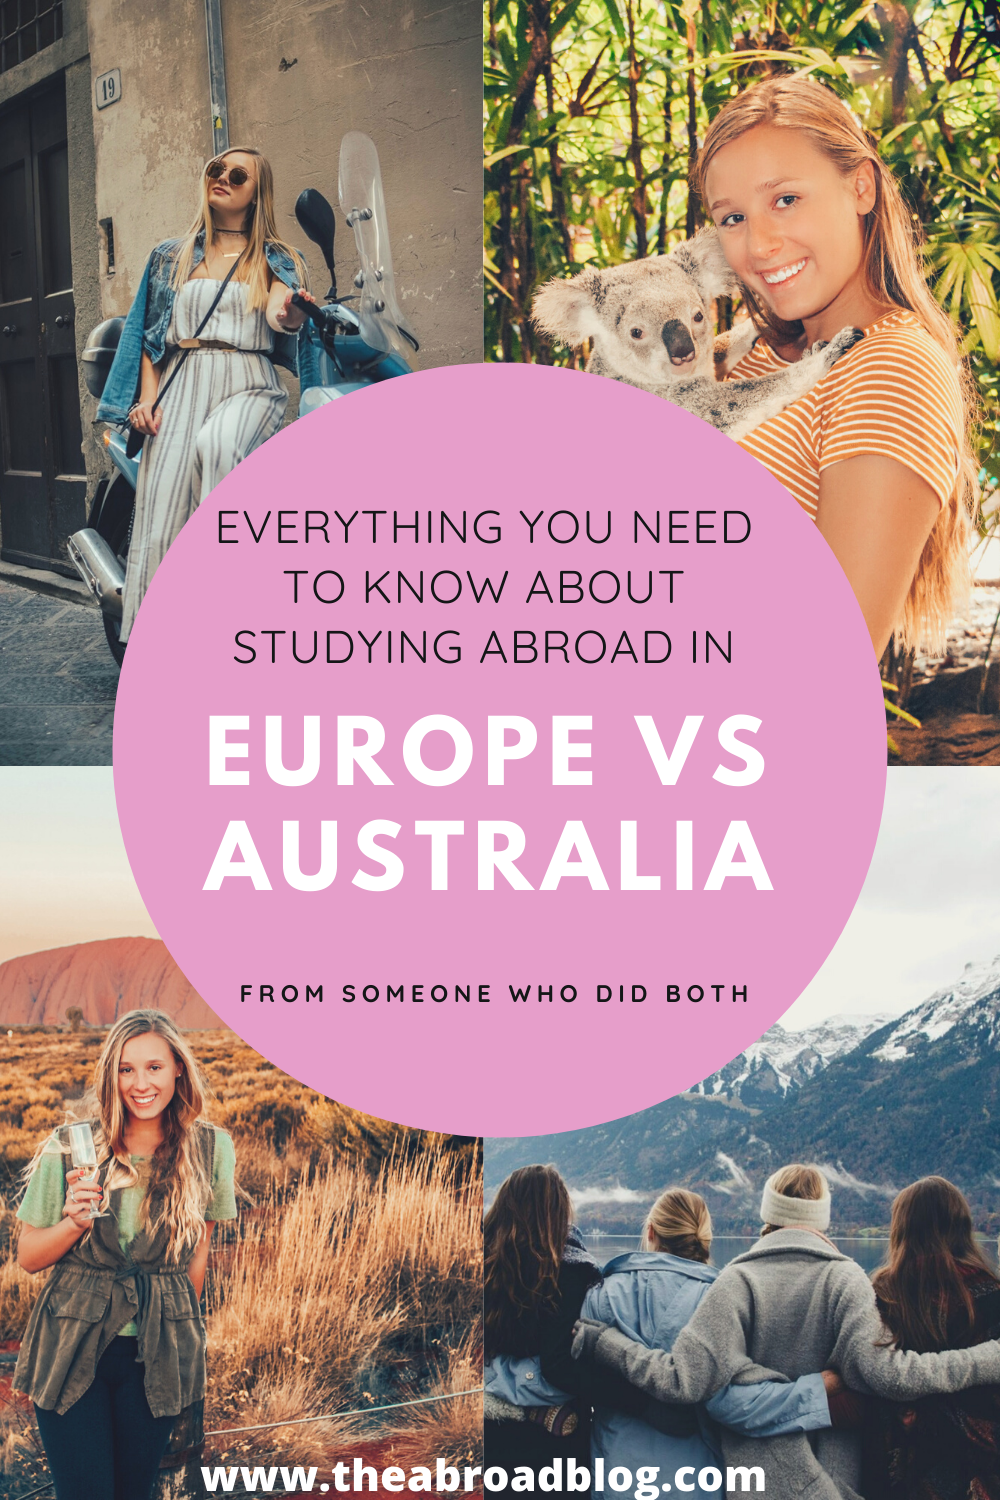 Pin about everything you need to know about studying abroad in Europe vs. Australia